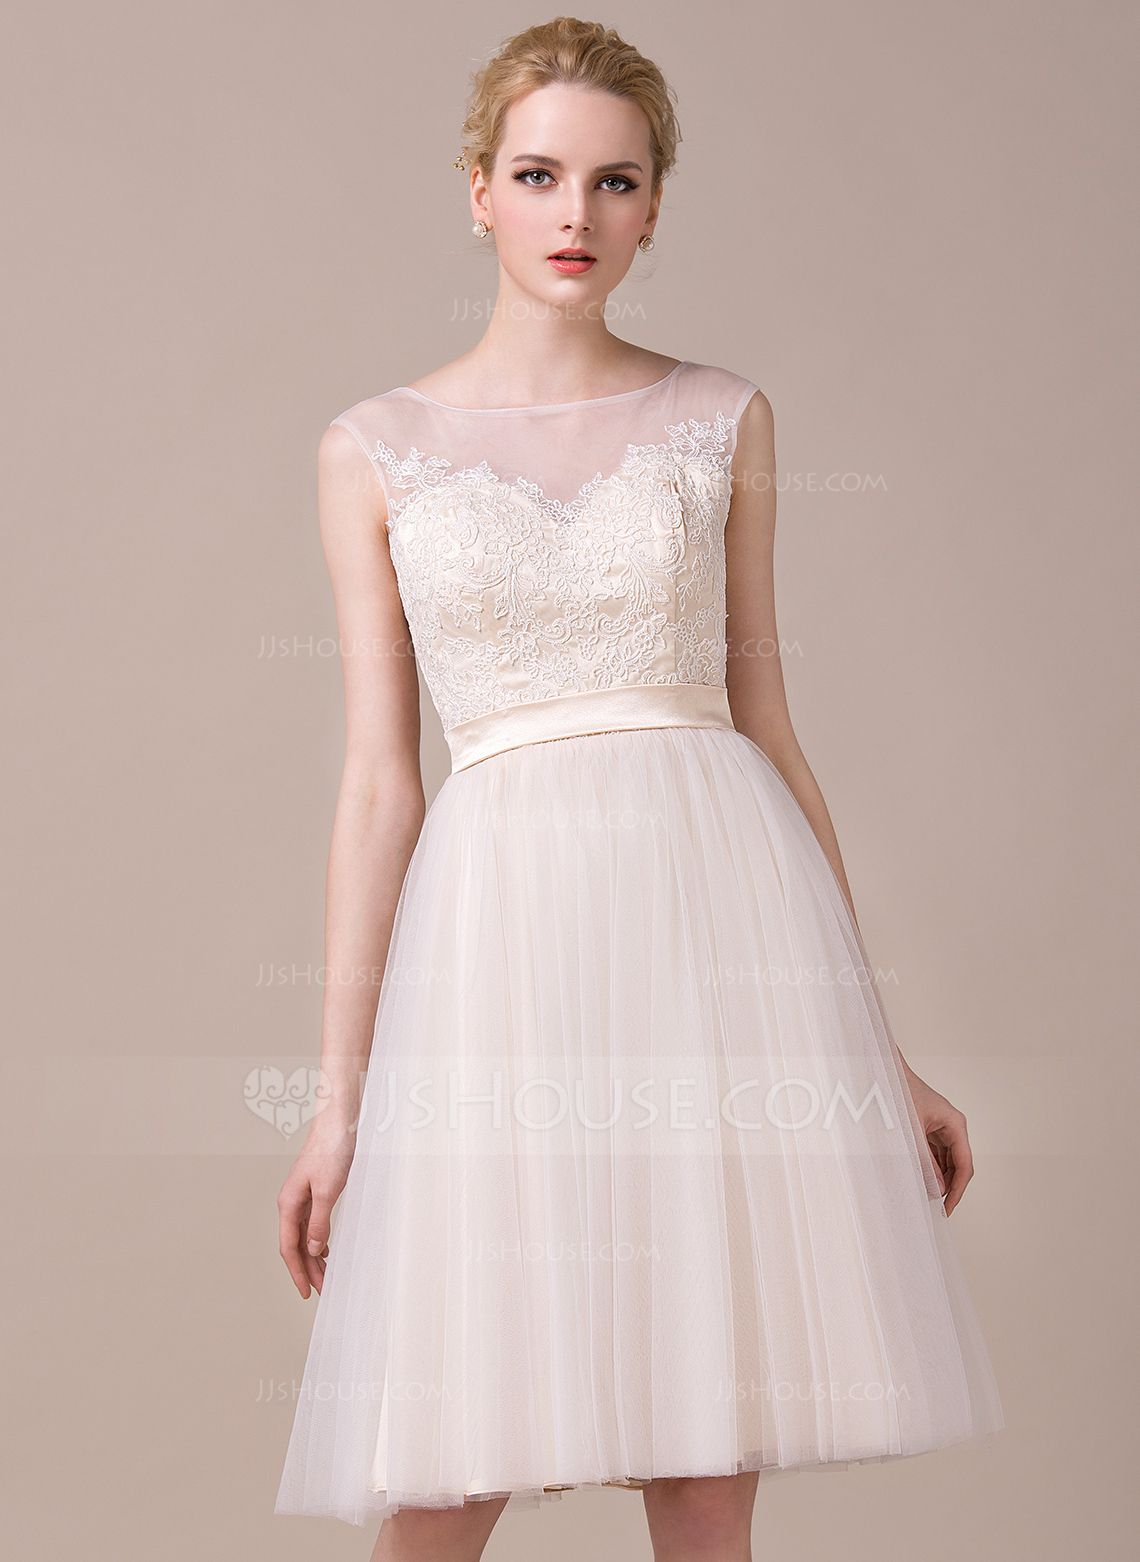 US$ 4.4] A-Line/Princess Scoop Neck Knee-Length Tulle Lace